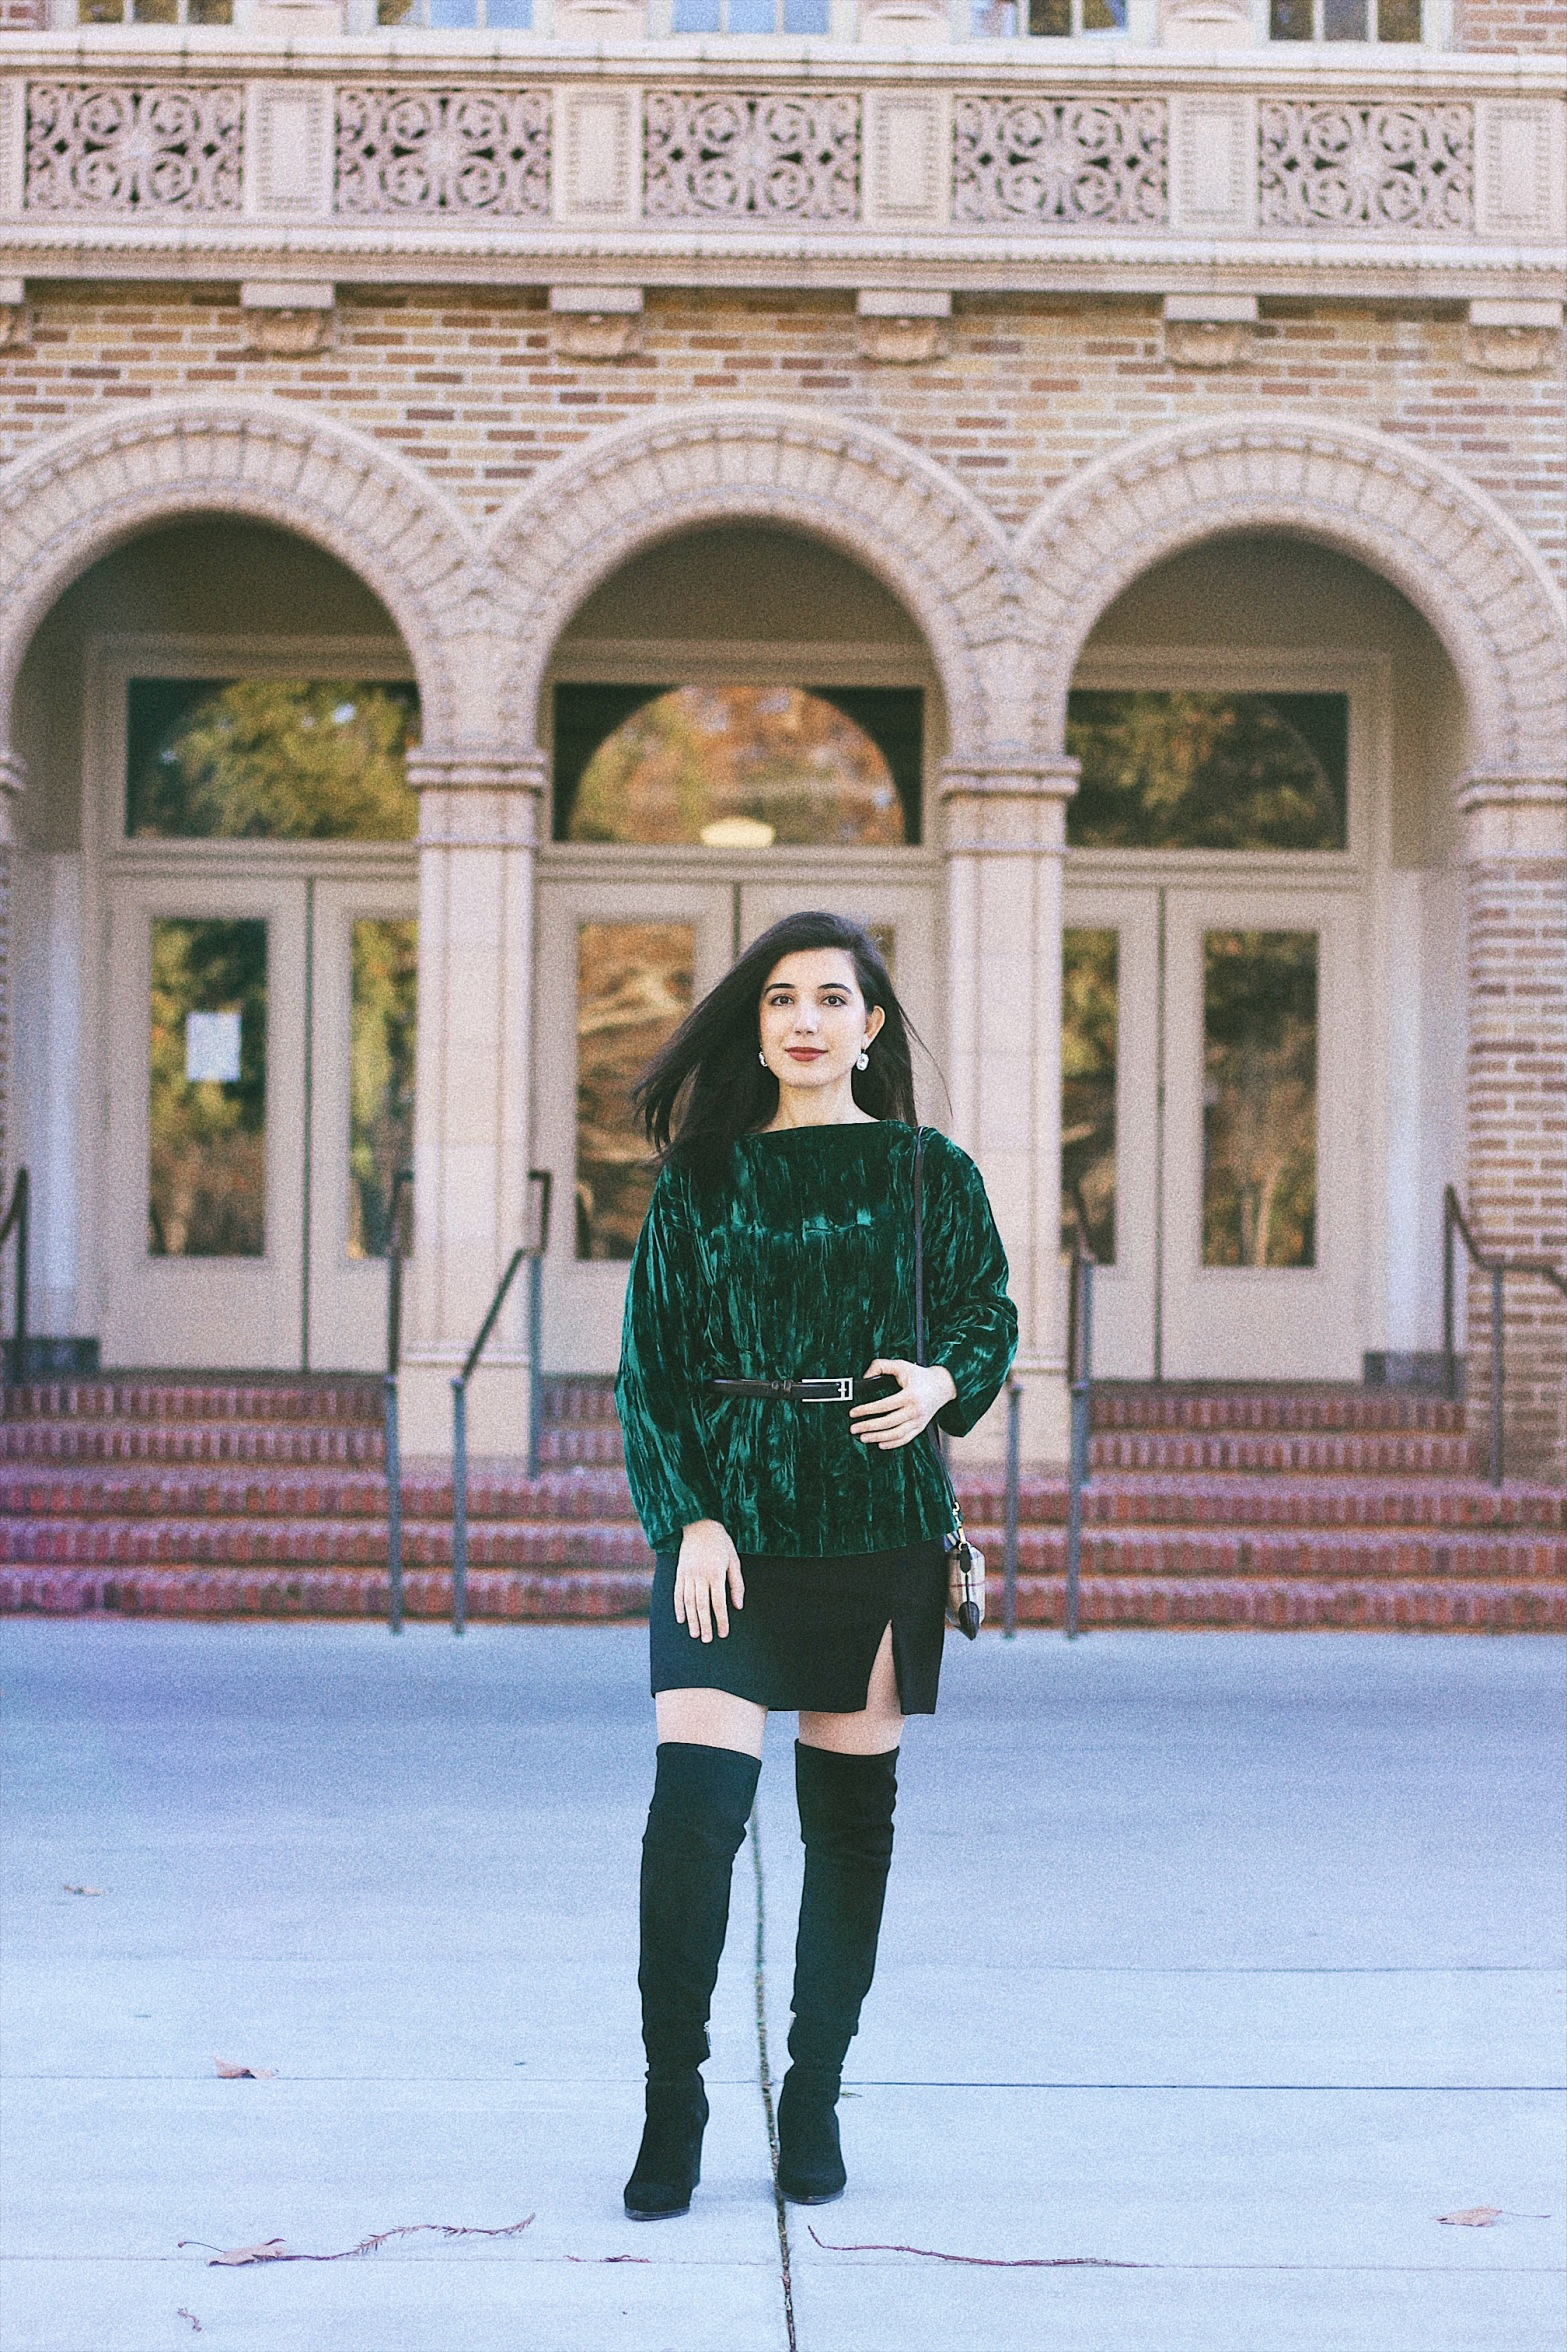 New Year's Eve lookbook, fashion blogger, style blogger, lookbook, outfit of the night, green velvet, over-the-knee boots, belted top, New Year's Eve, NYE